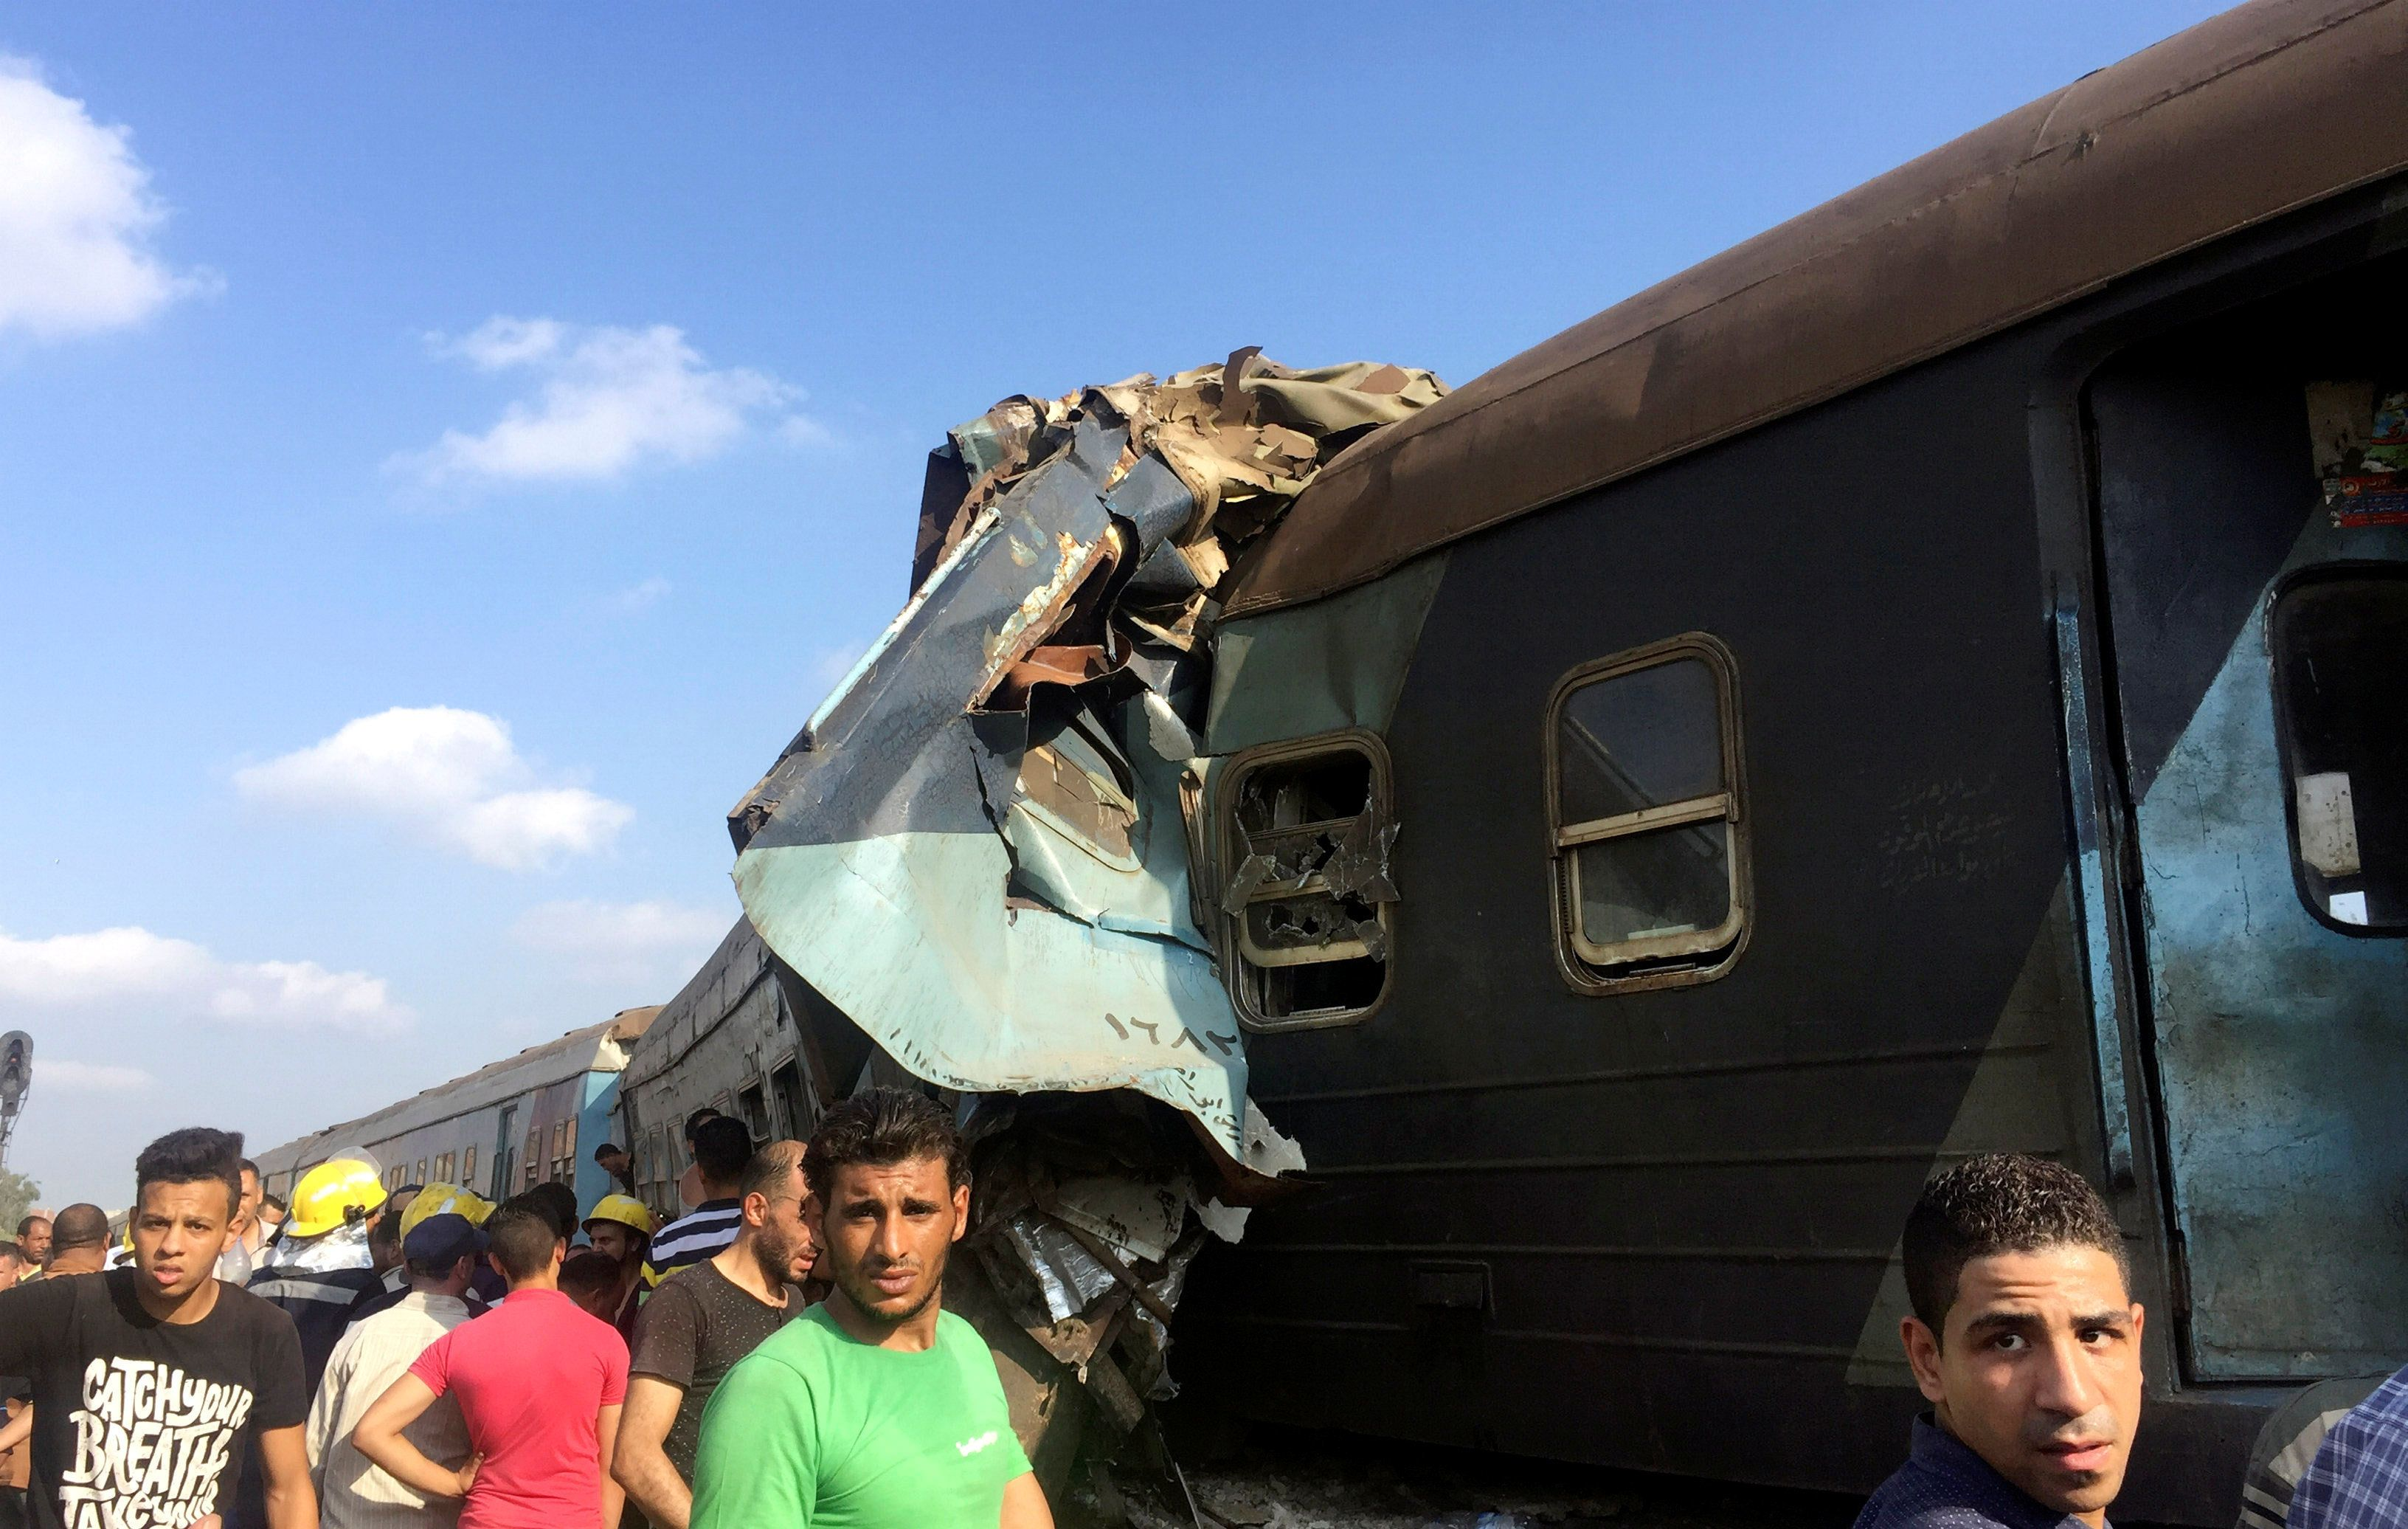 Egyptians look at the crash of two trains that collided near the Khorshid station in Egypt's coastal city of Alexandria, Egyp